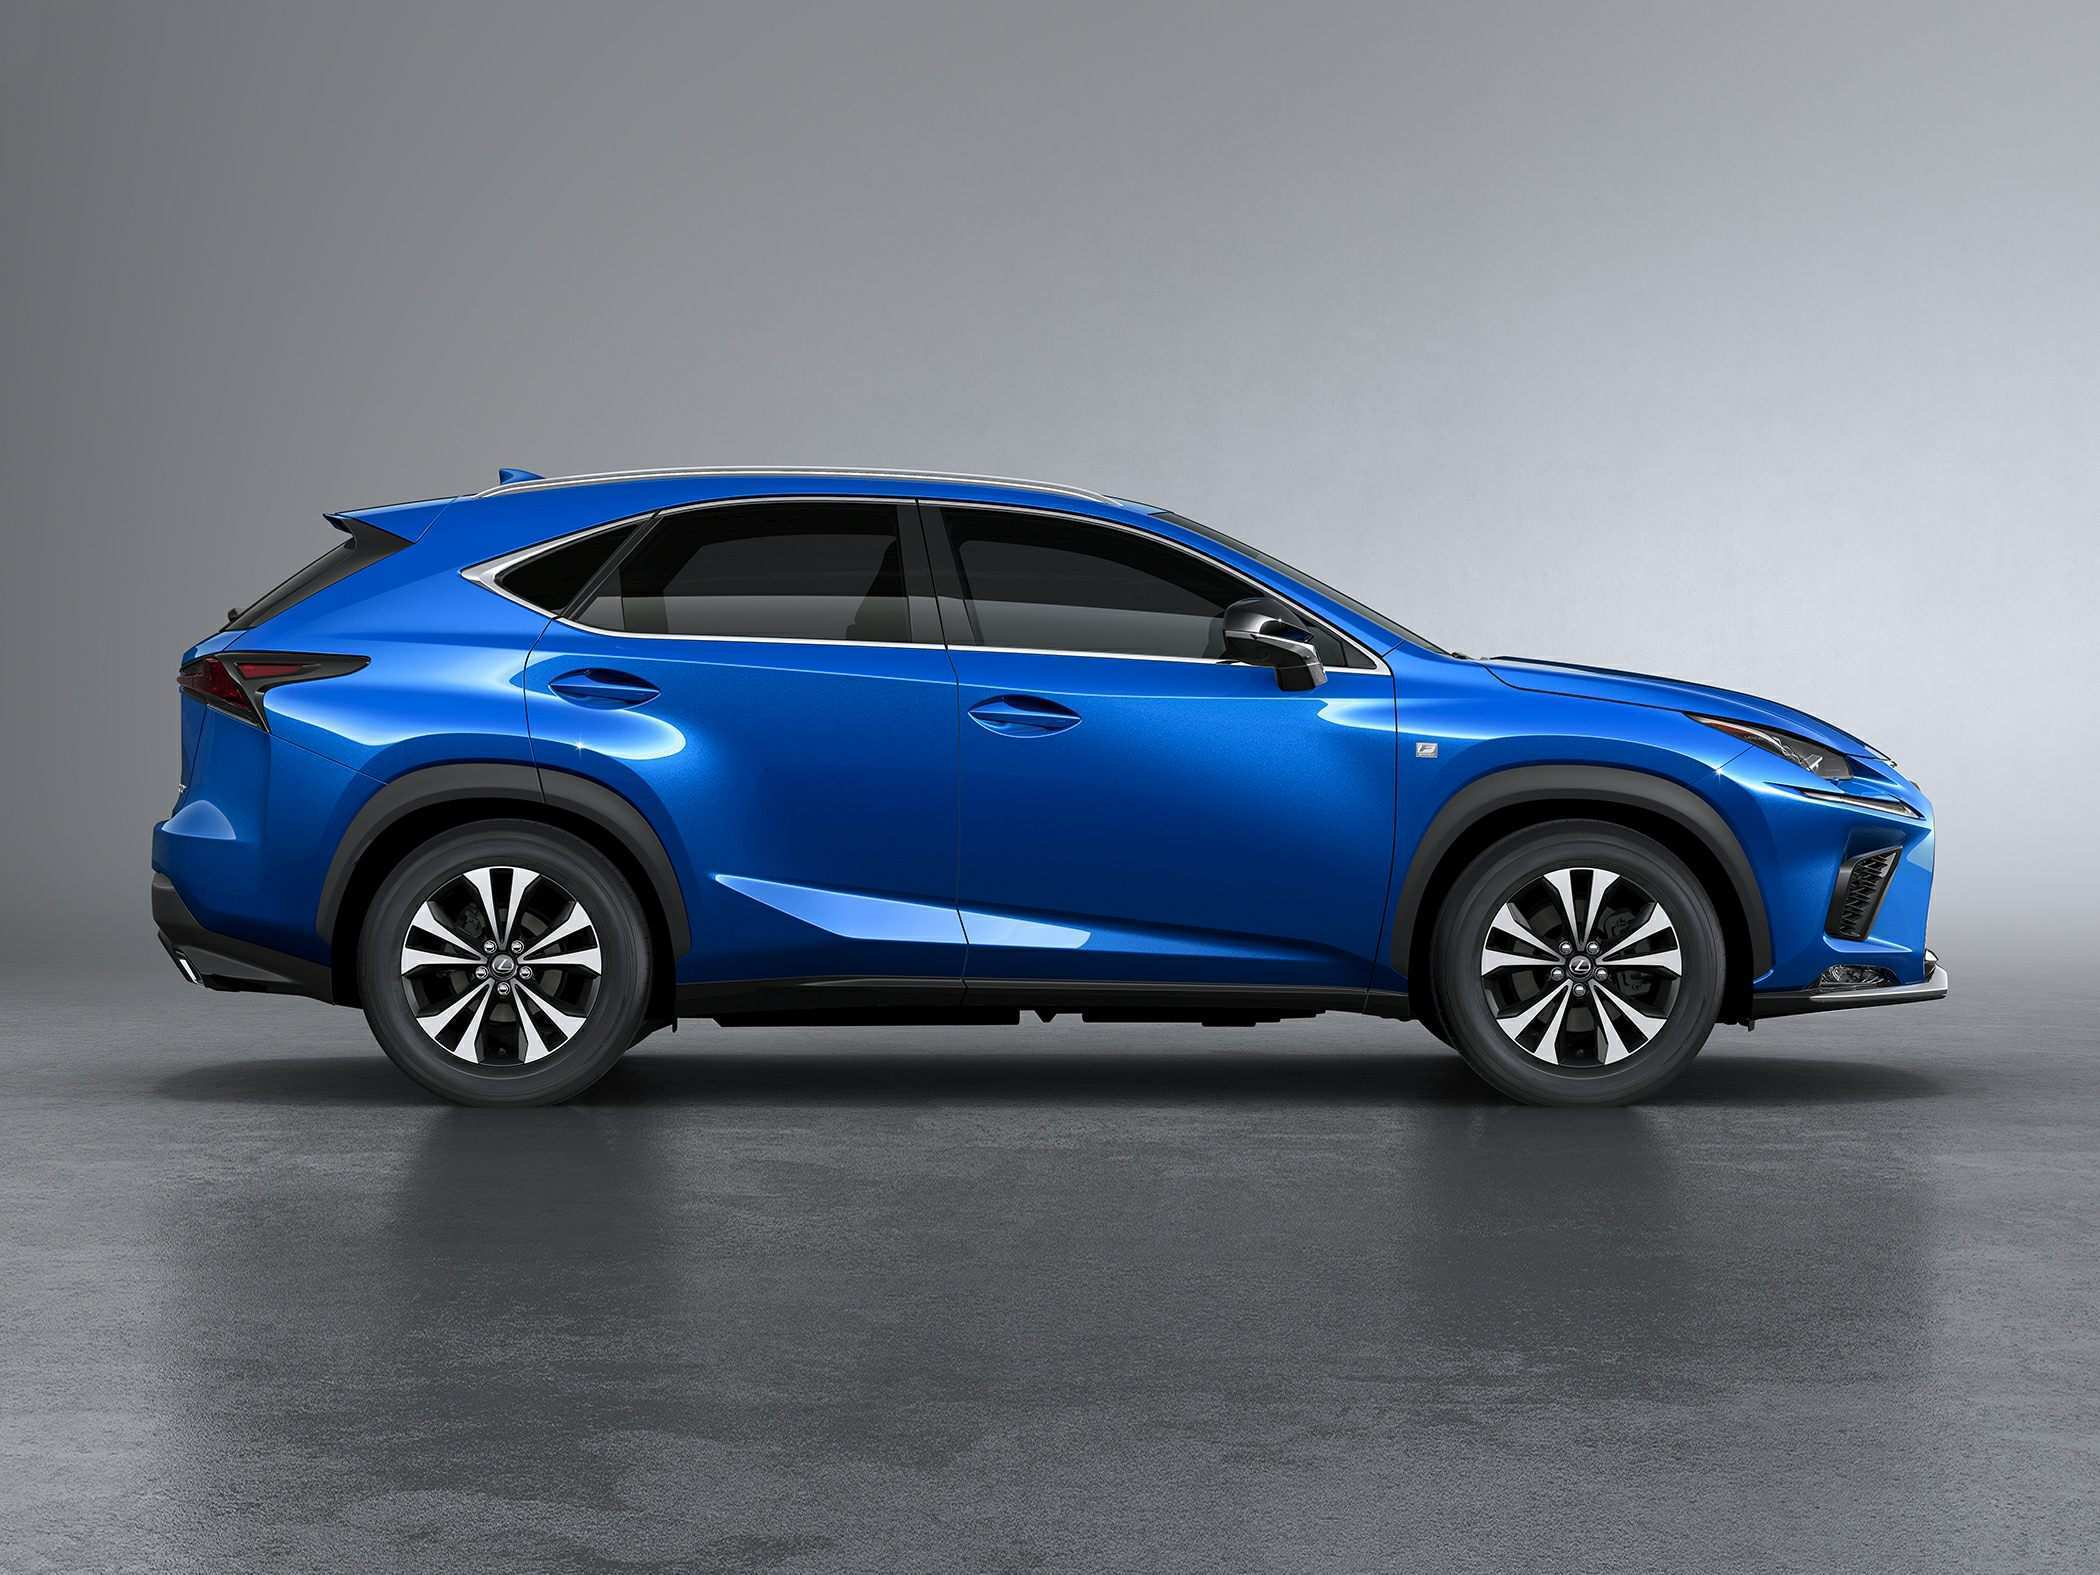 49 Best Review 2019 Lexus 300 Nx Engine by 2019 Lexus 300 Nx